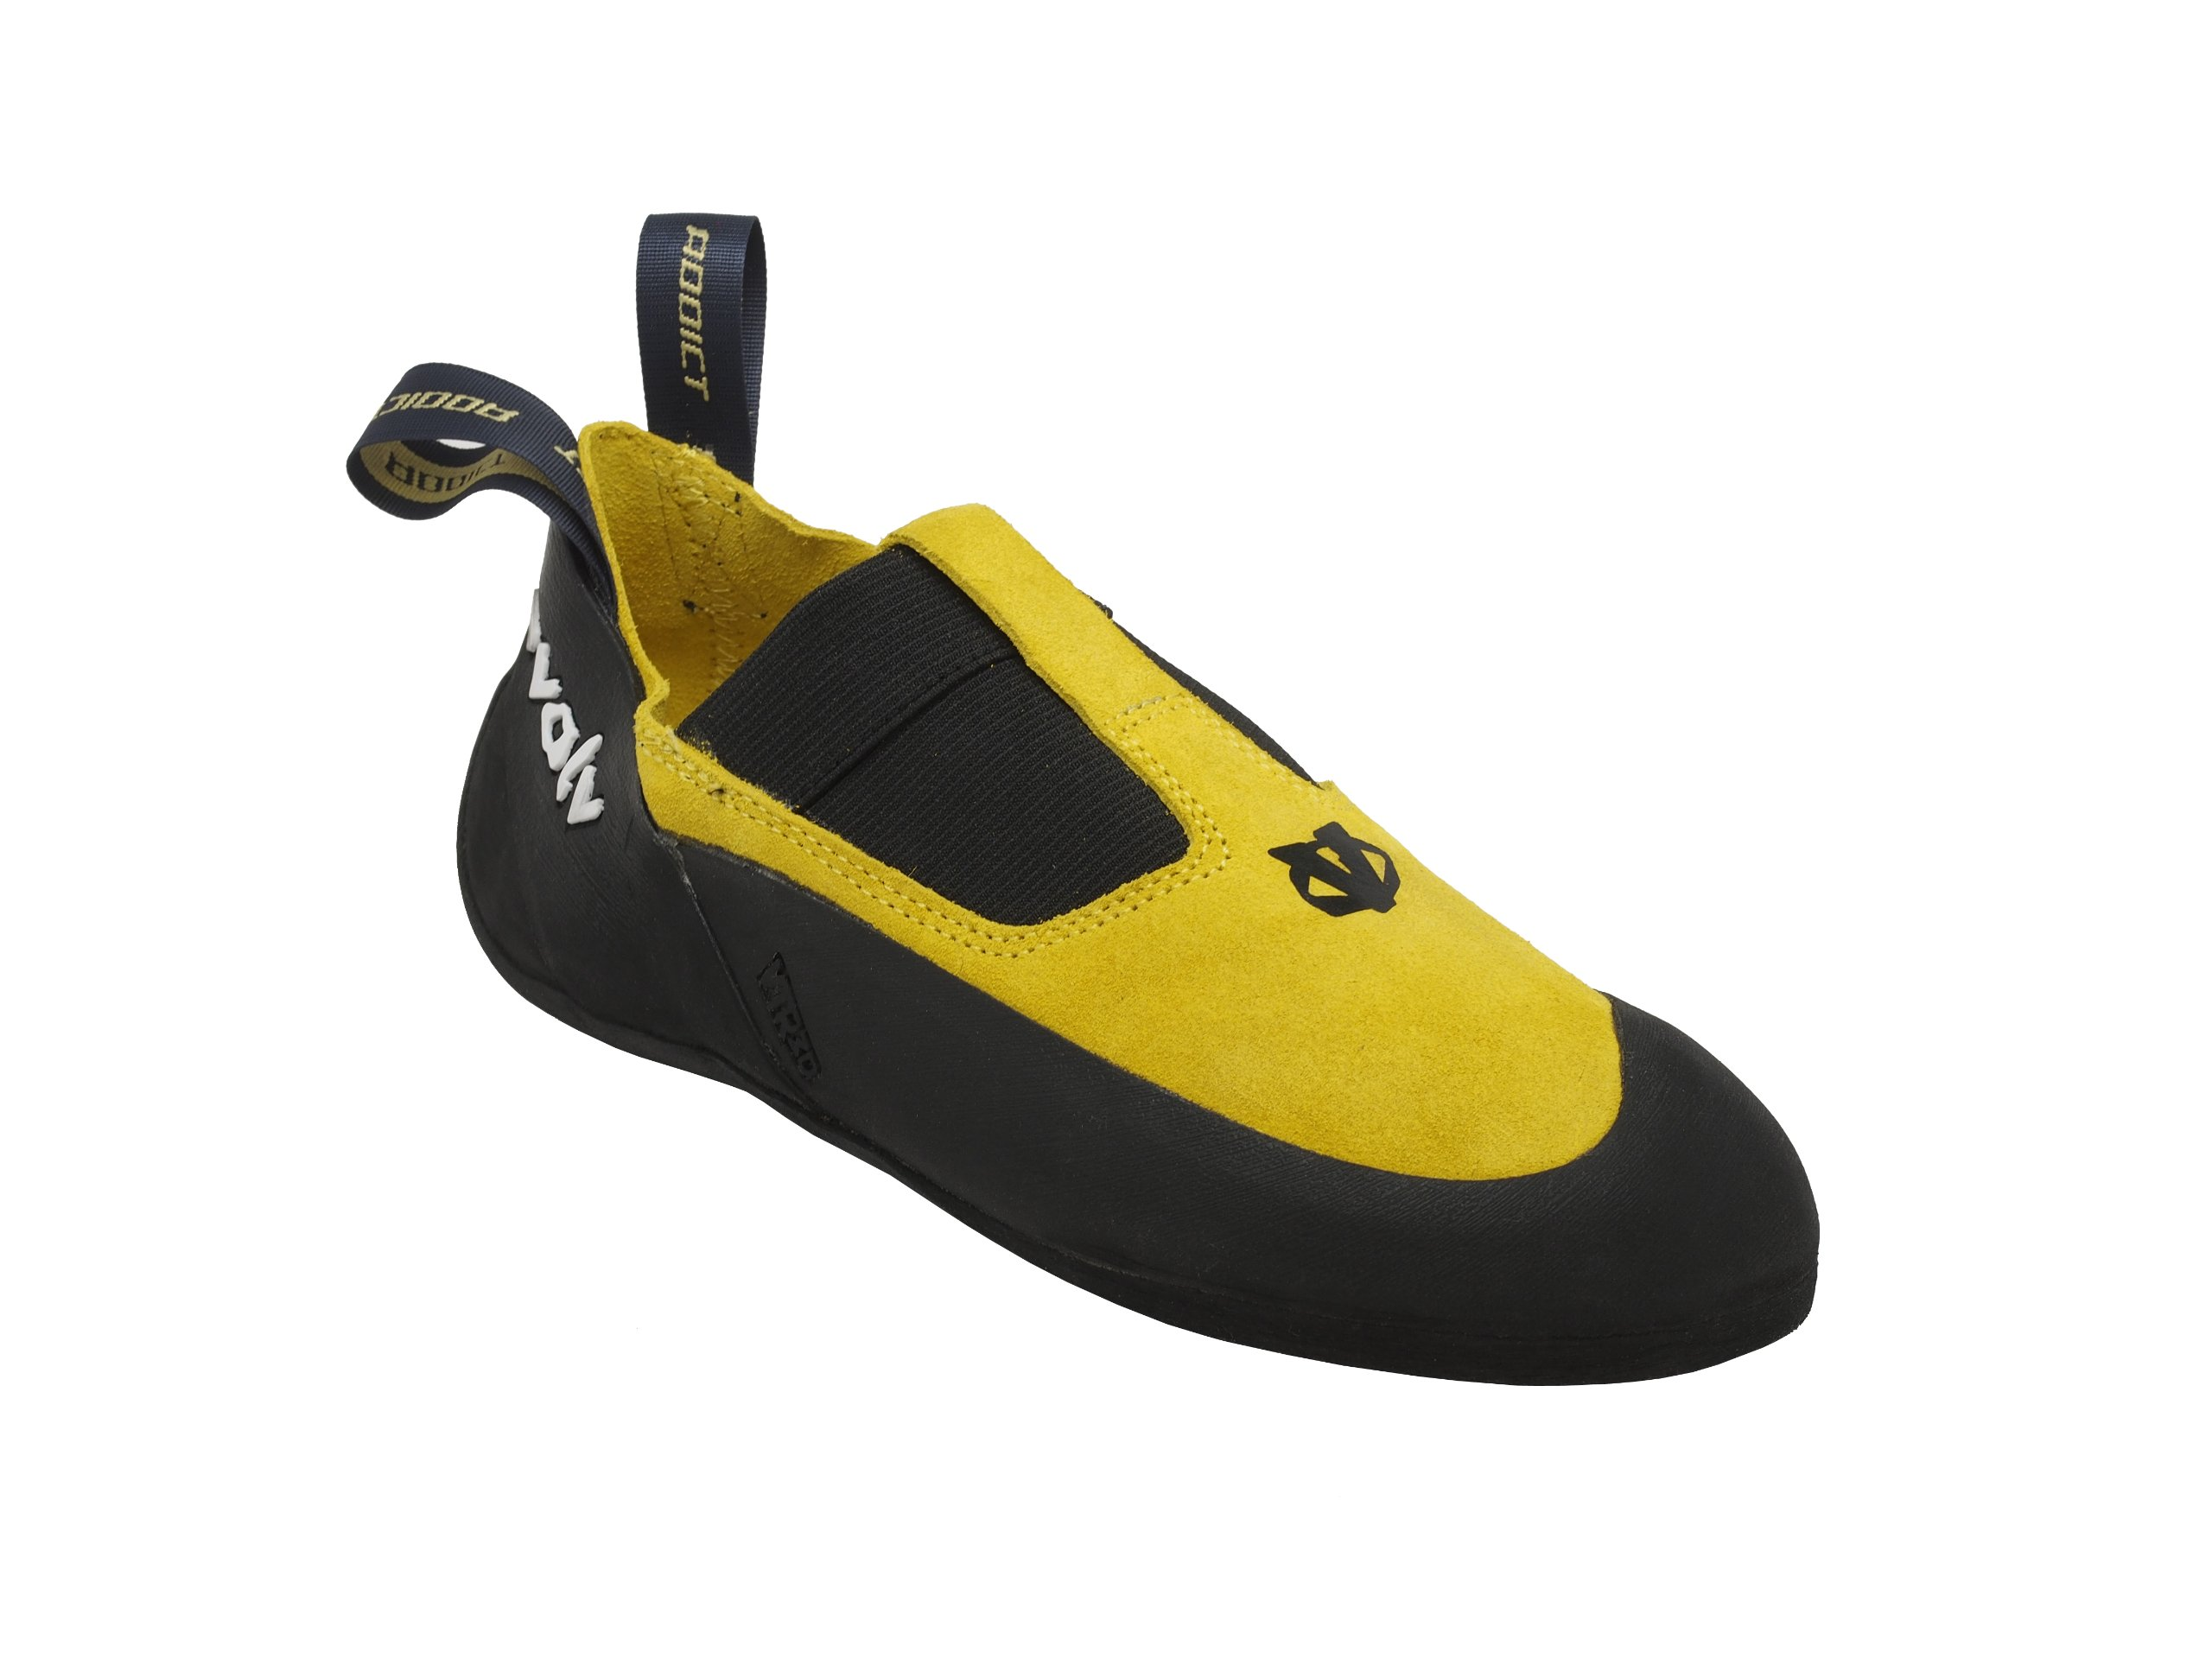 Evolv Addict Climbing Shoe - Yellow 10 by Evolv